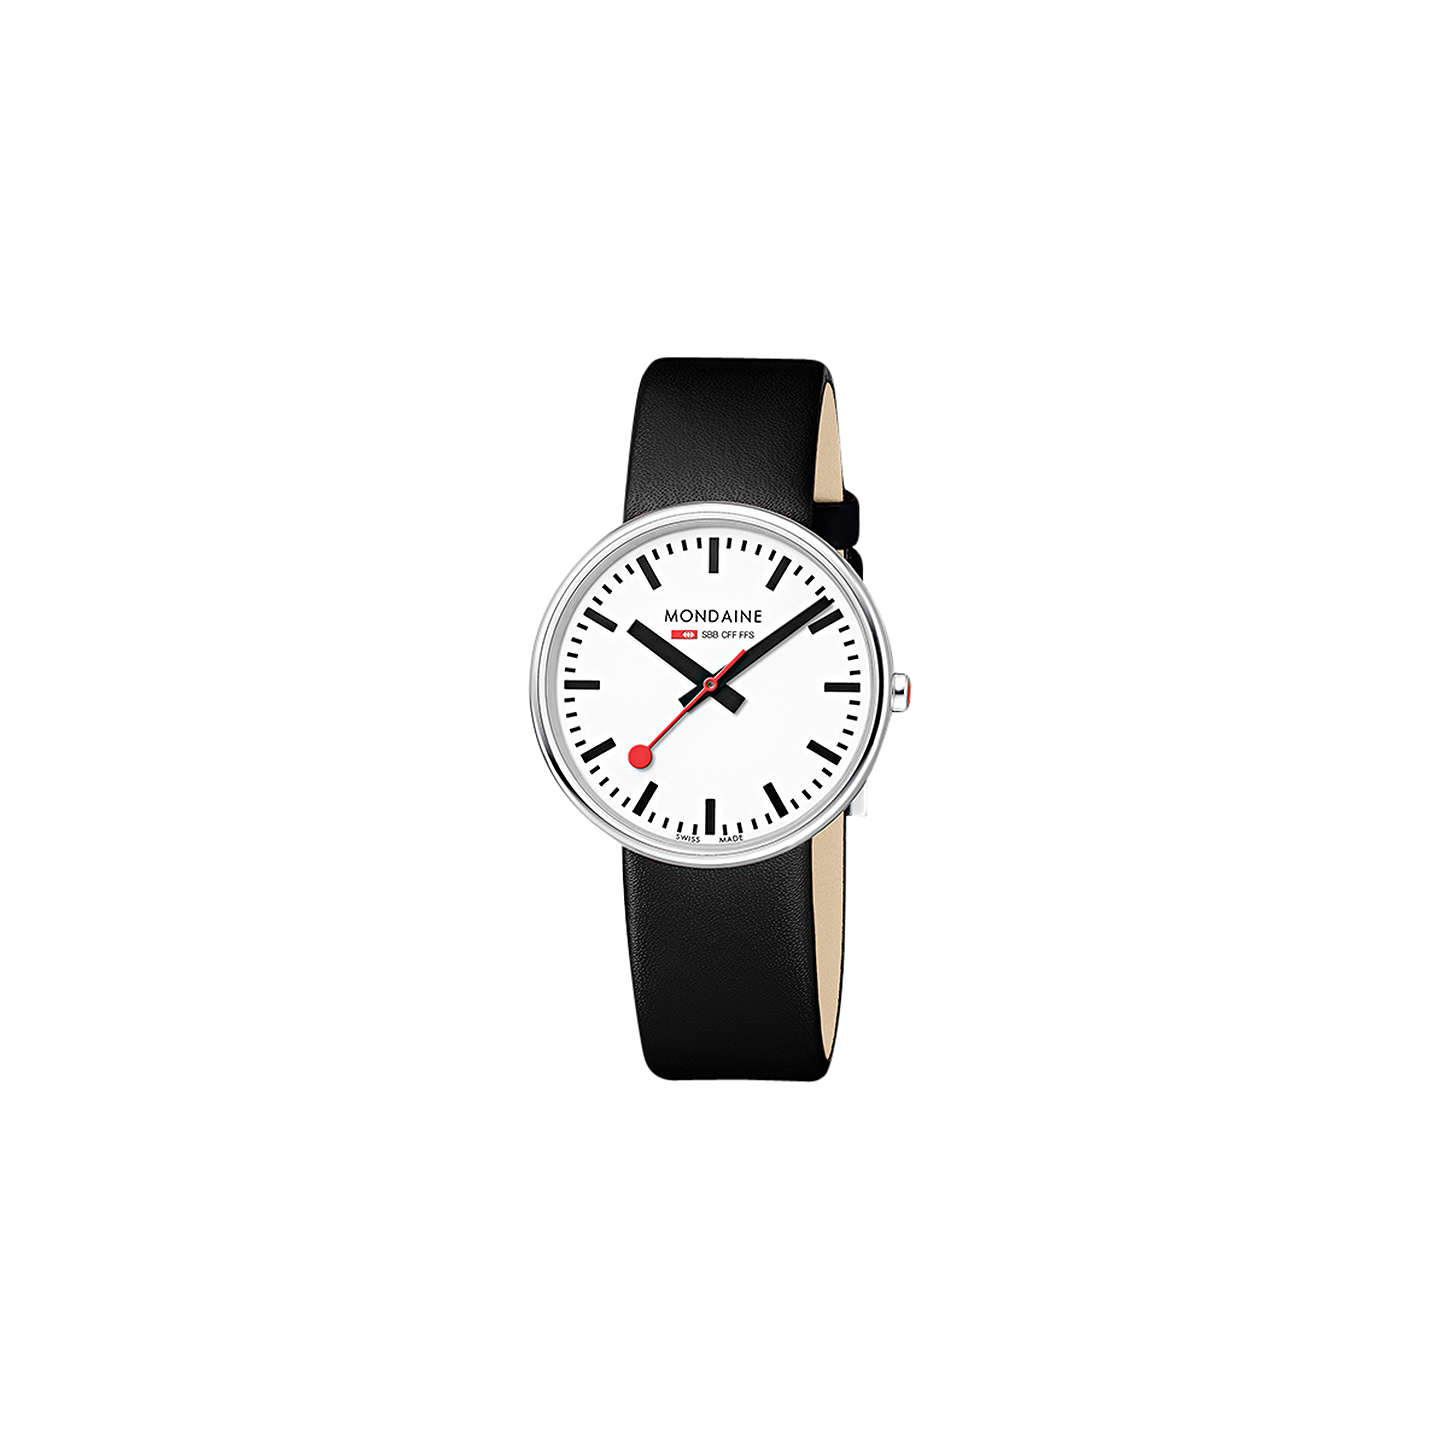 bristol daniel watchshop black com unisex watches wellington watch classic